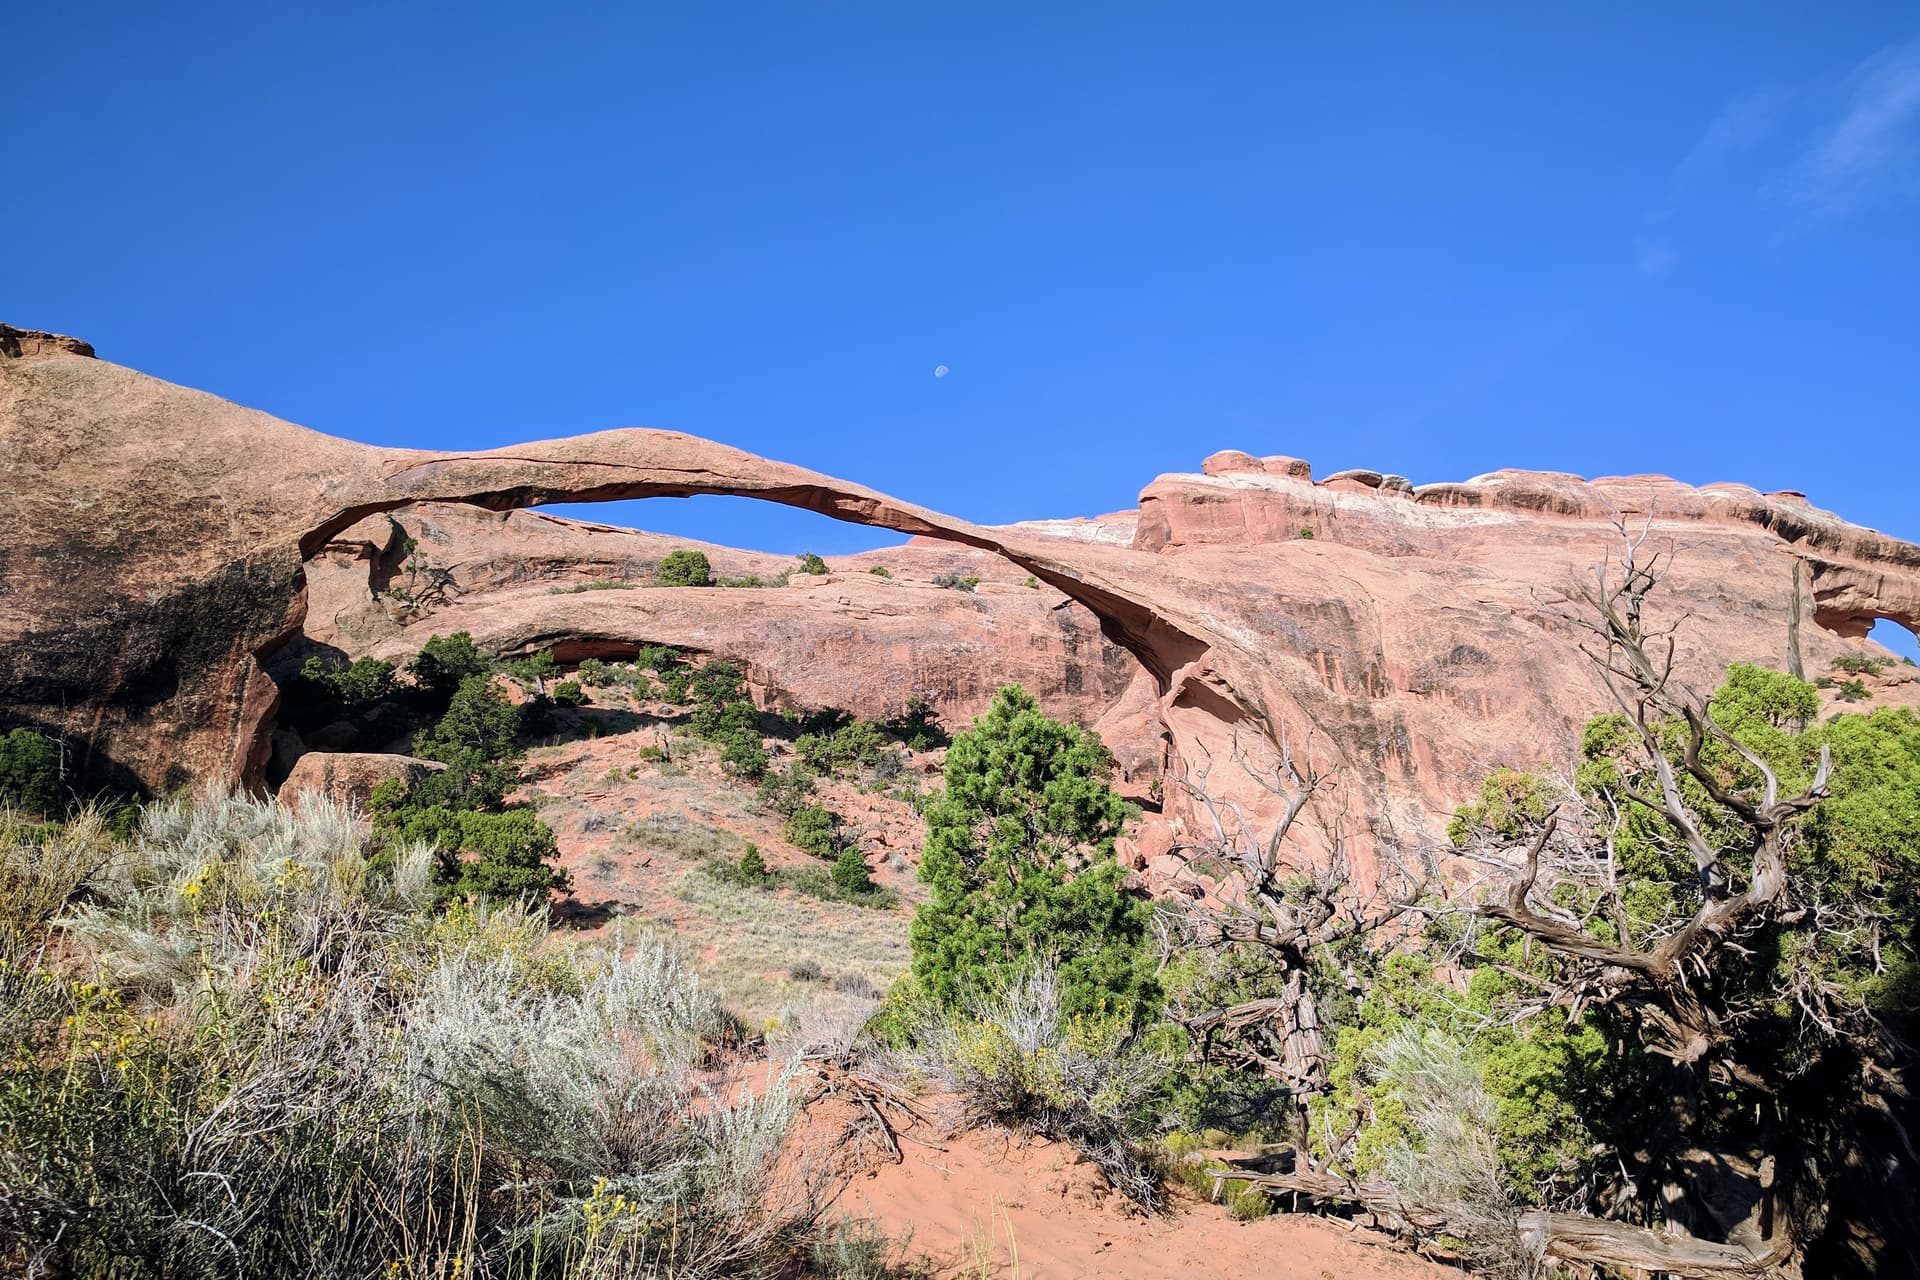 An incredibly thin red sandstone arch, with the Moon visible just beyond it.